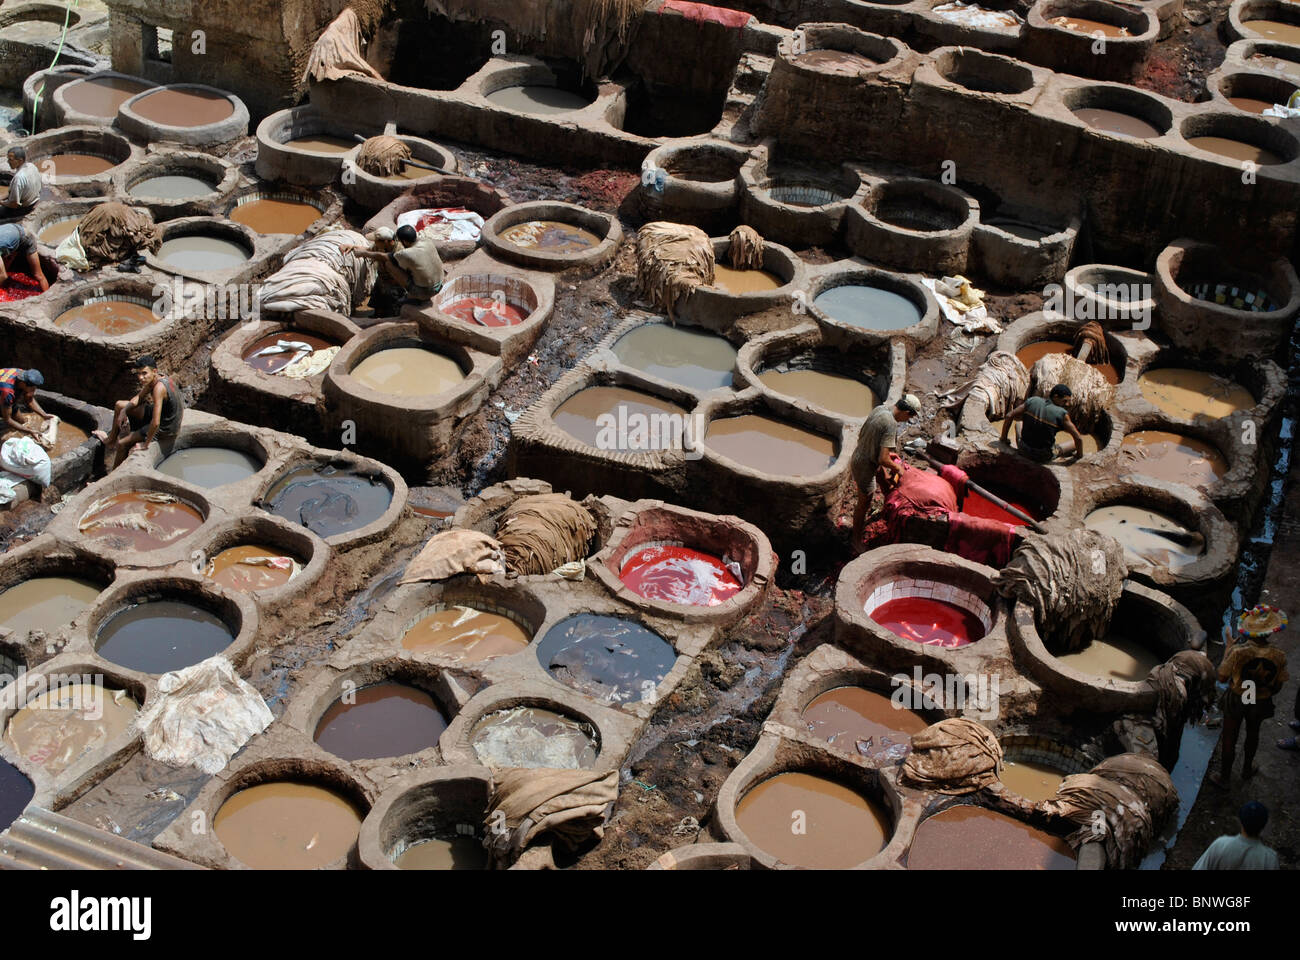 Workers at the Fes Tannery, Morocco - Stock Image